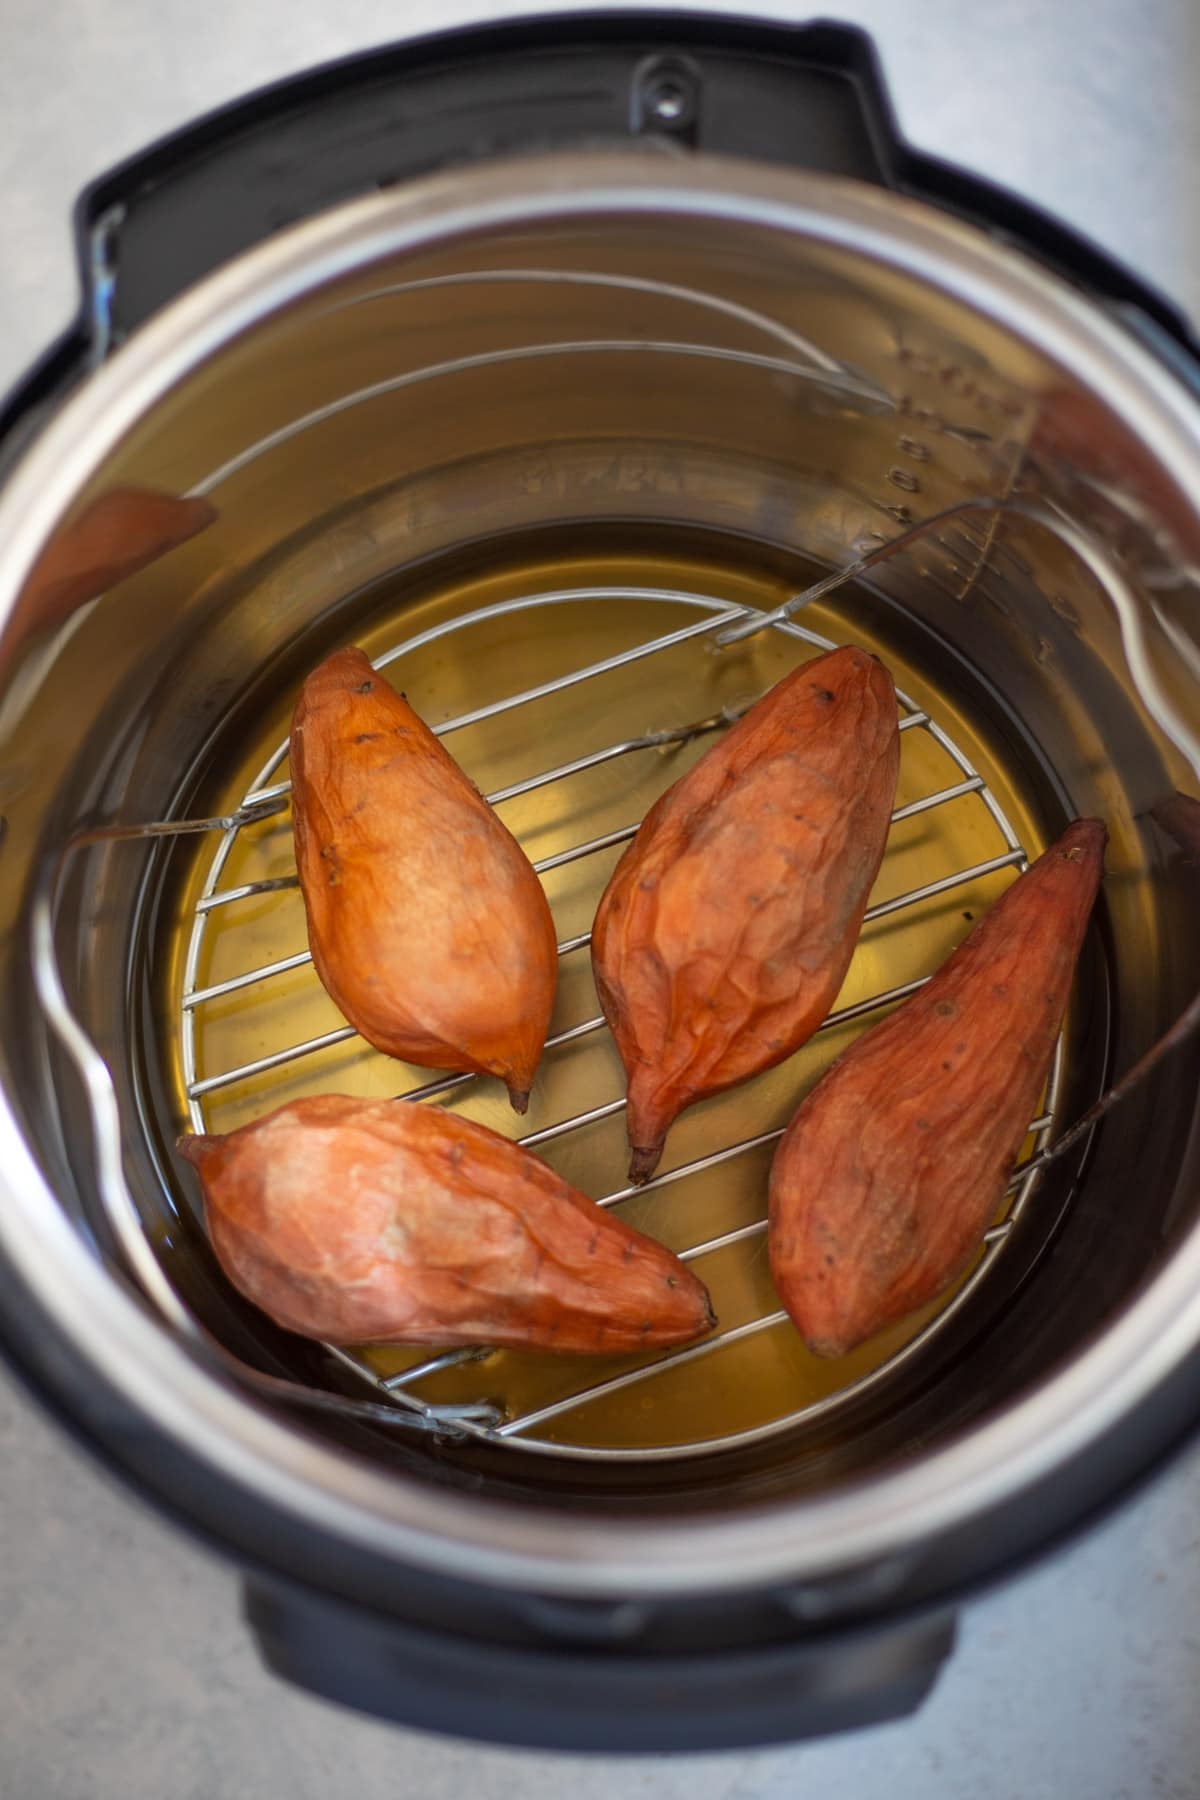 Sweet potatoes cooked in the instant pot